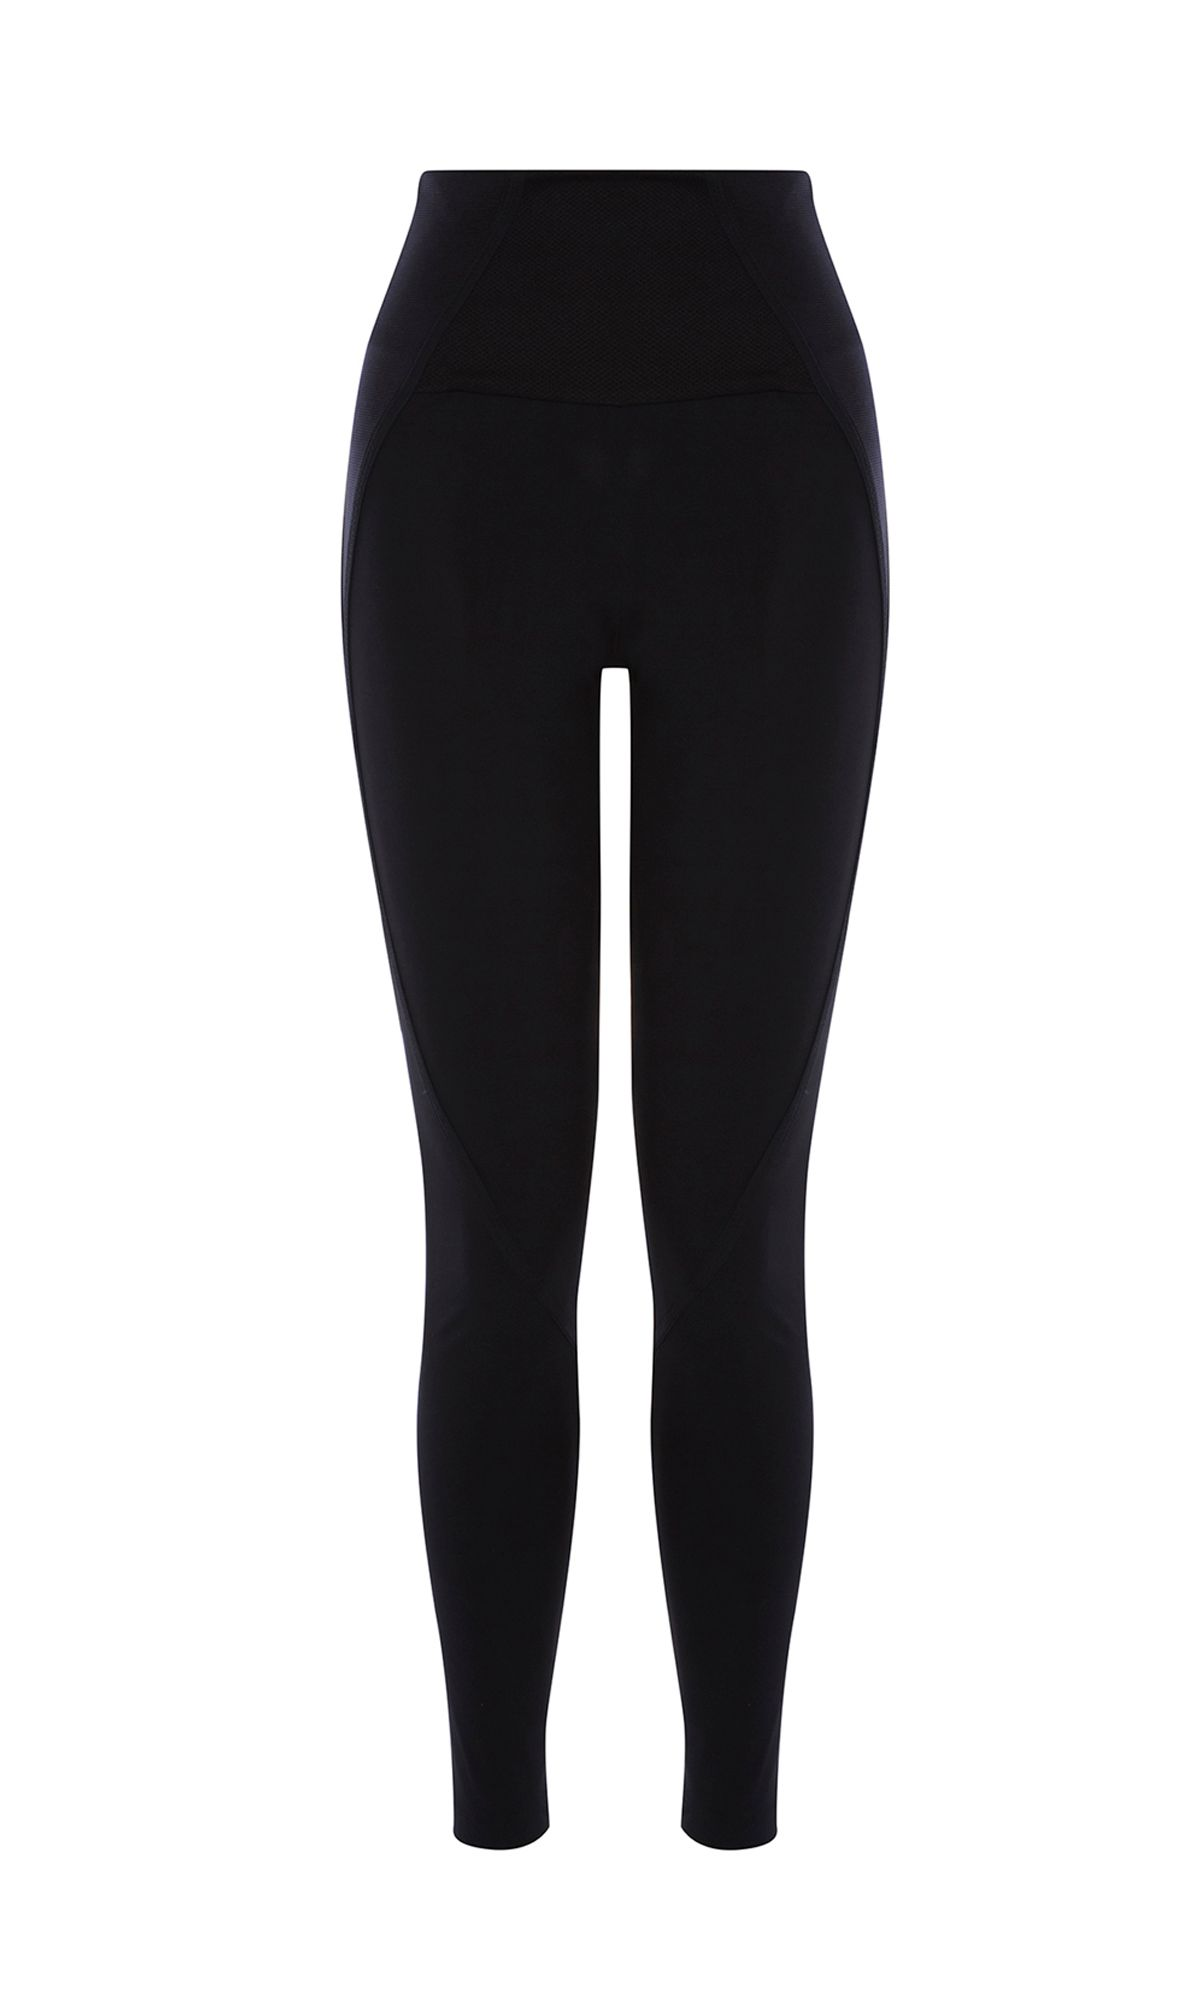 Karen Millen Panelled Elastic Leggings, Black